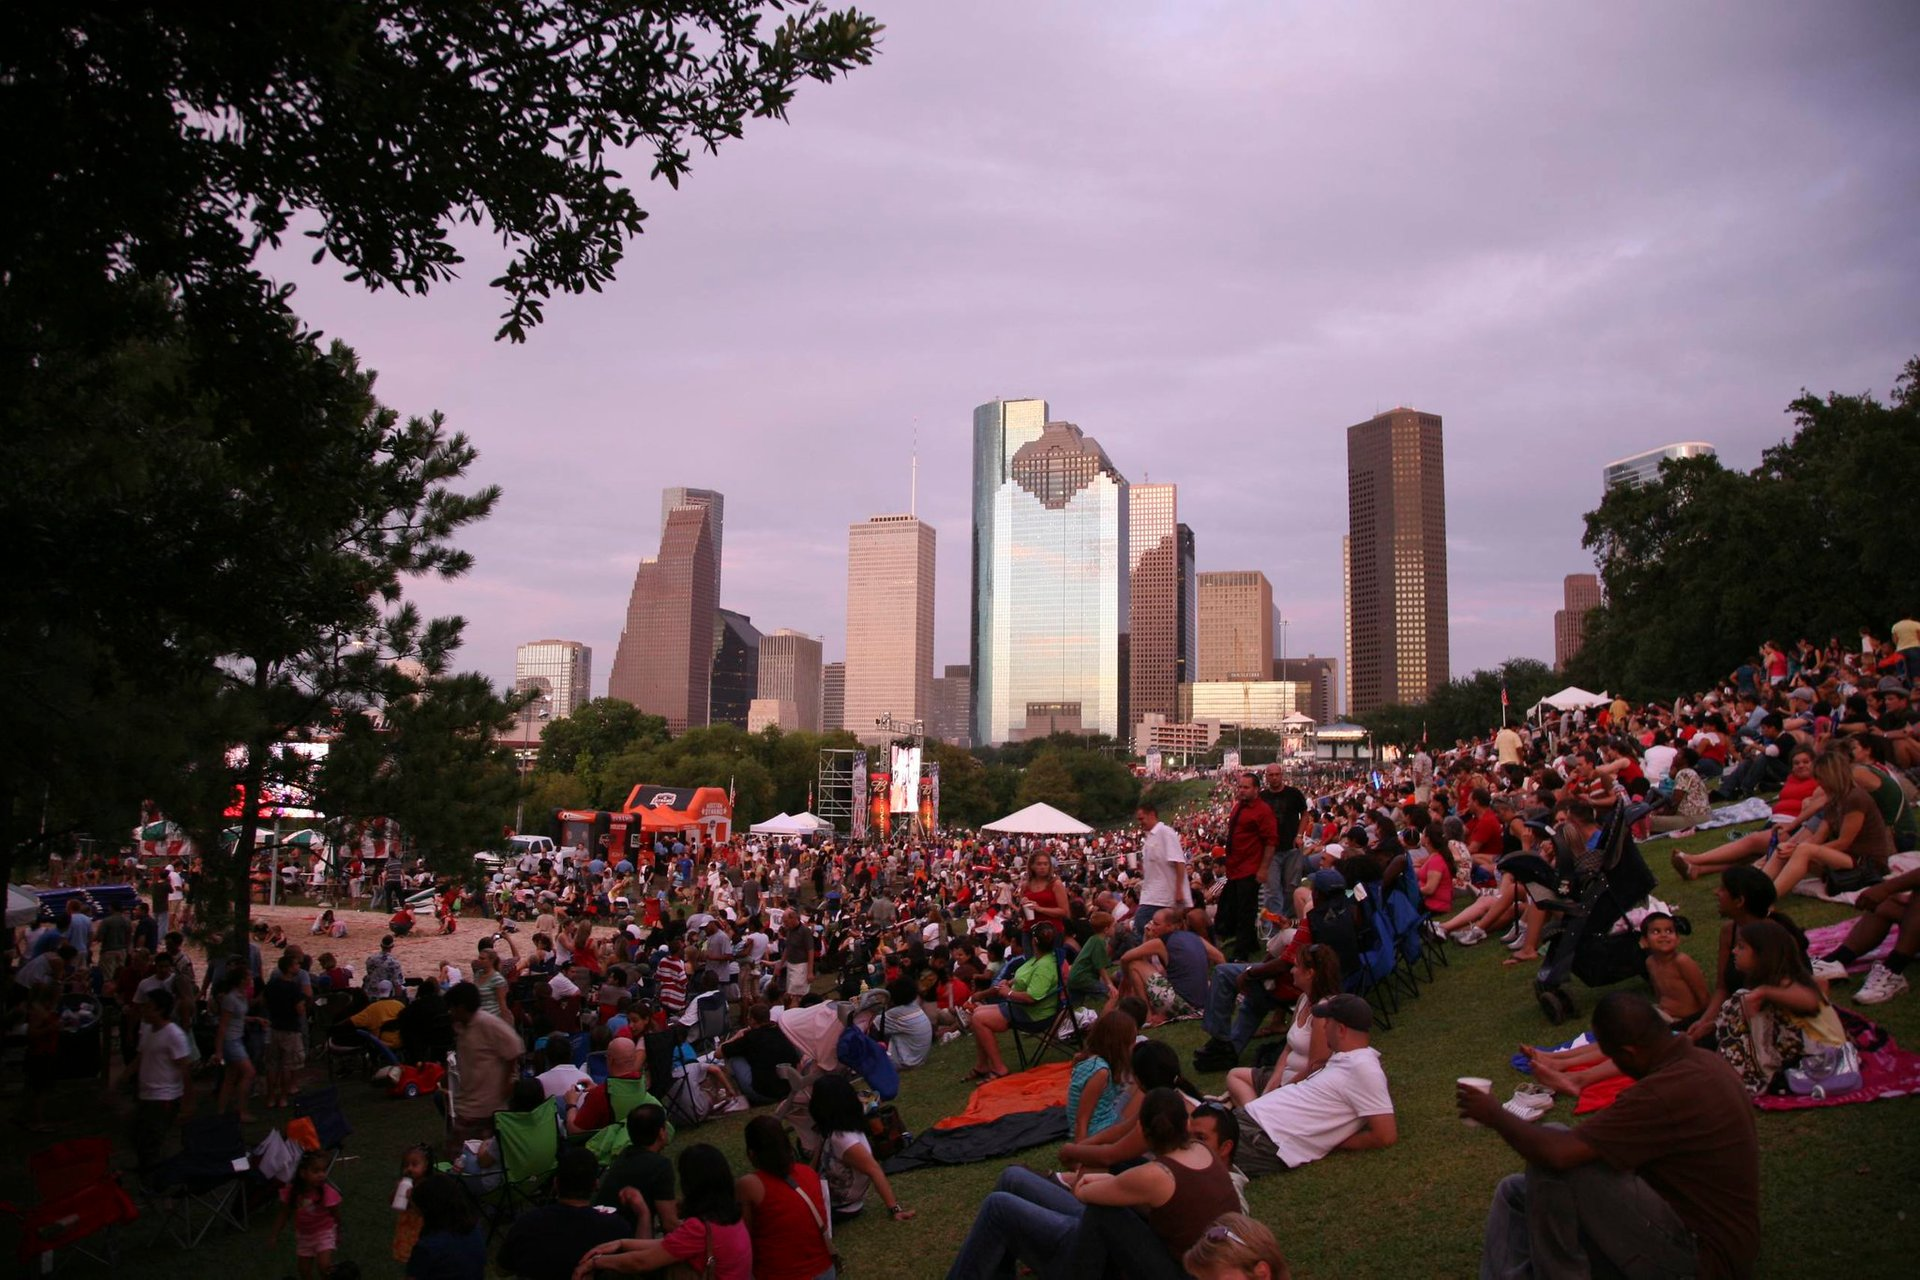 Freedom Over Texas concert with Houston's skyline on the backdrop 2020